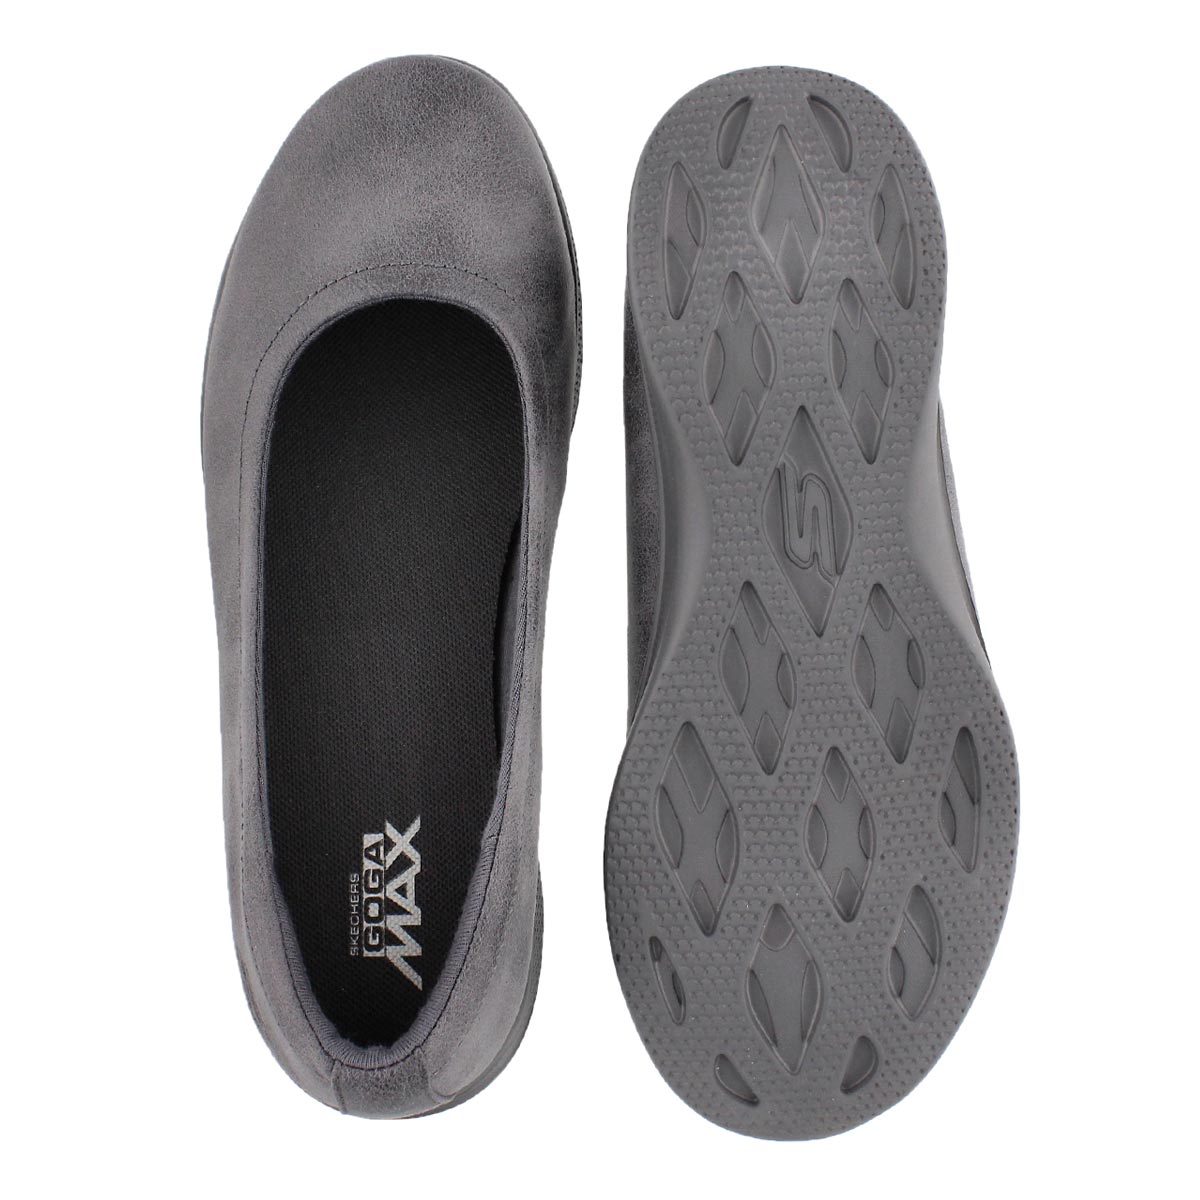 Lds GOstep Lite Mystic charc casual flat